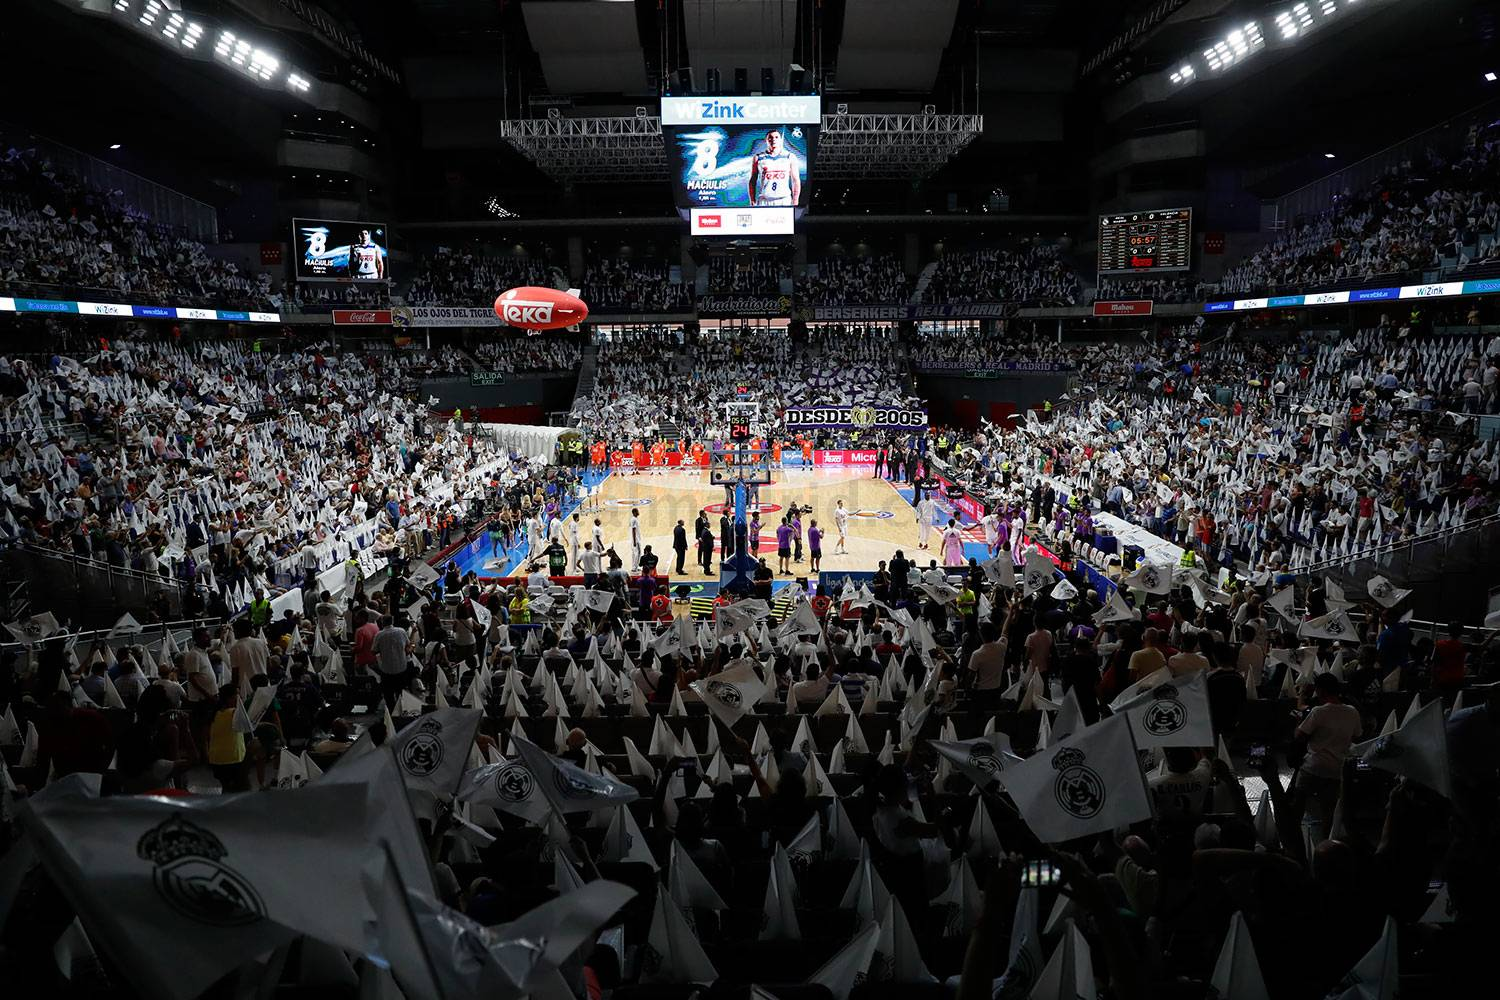 Real Madrid - Real Madrid - Valencia Basket - 10-06-2017